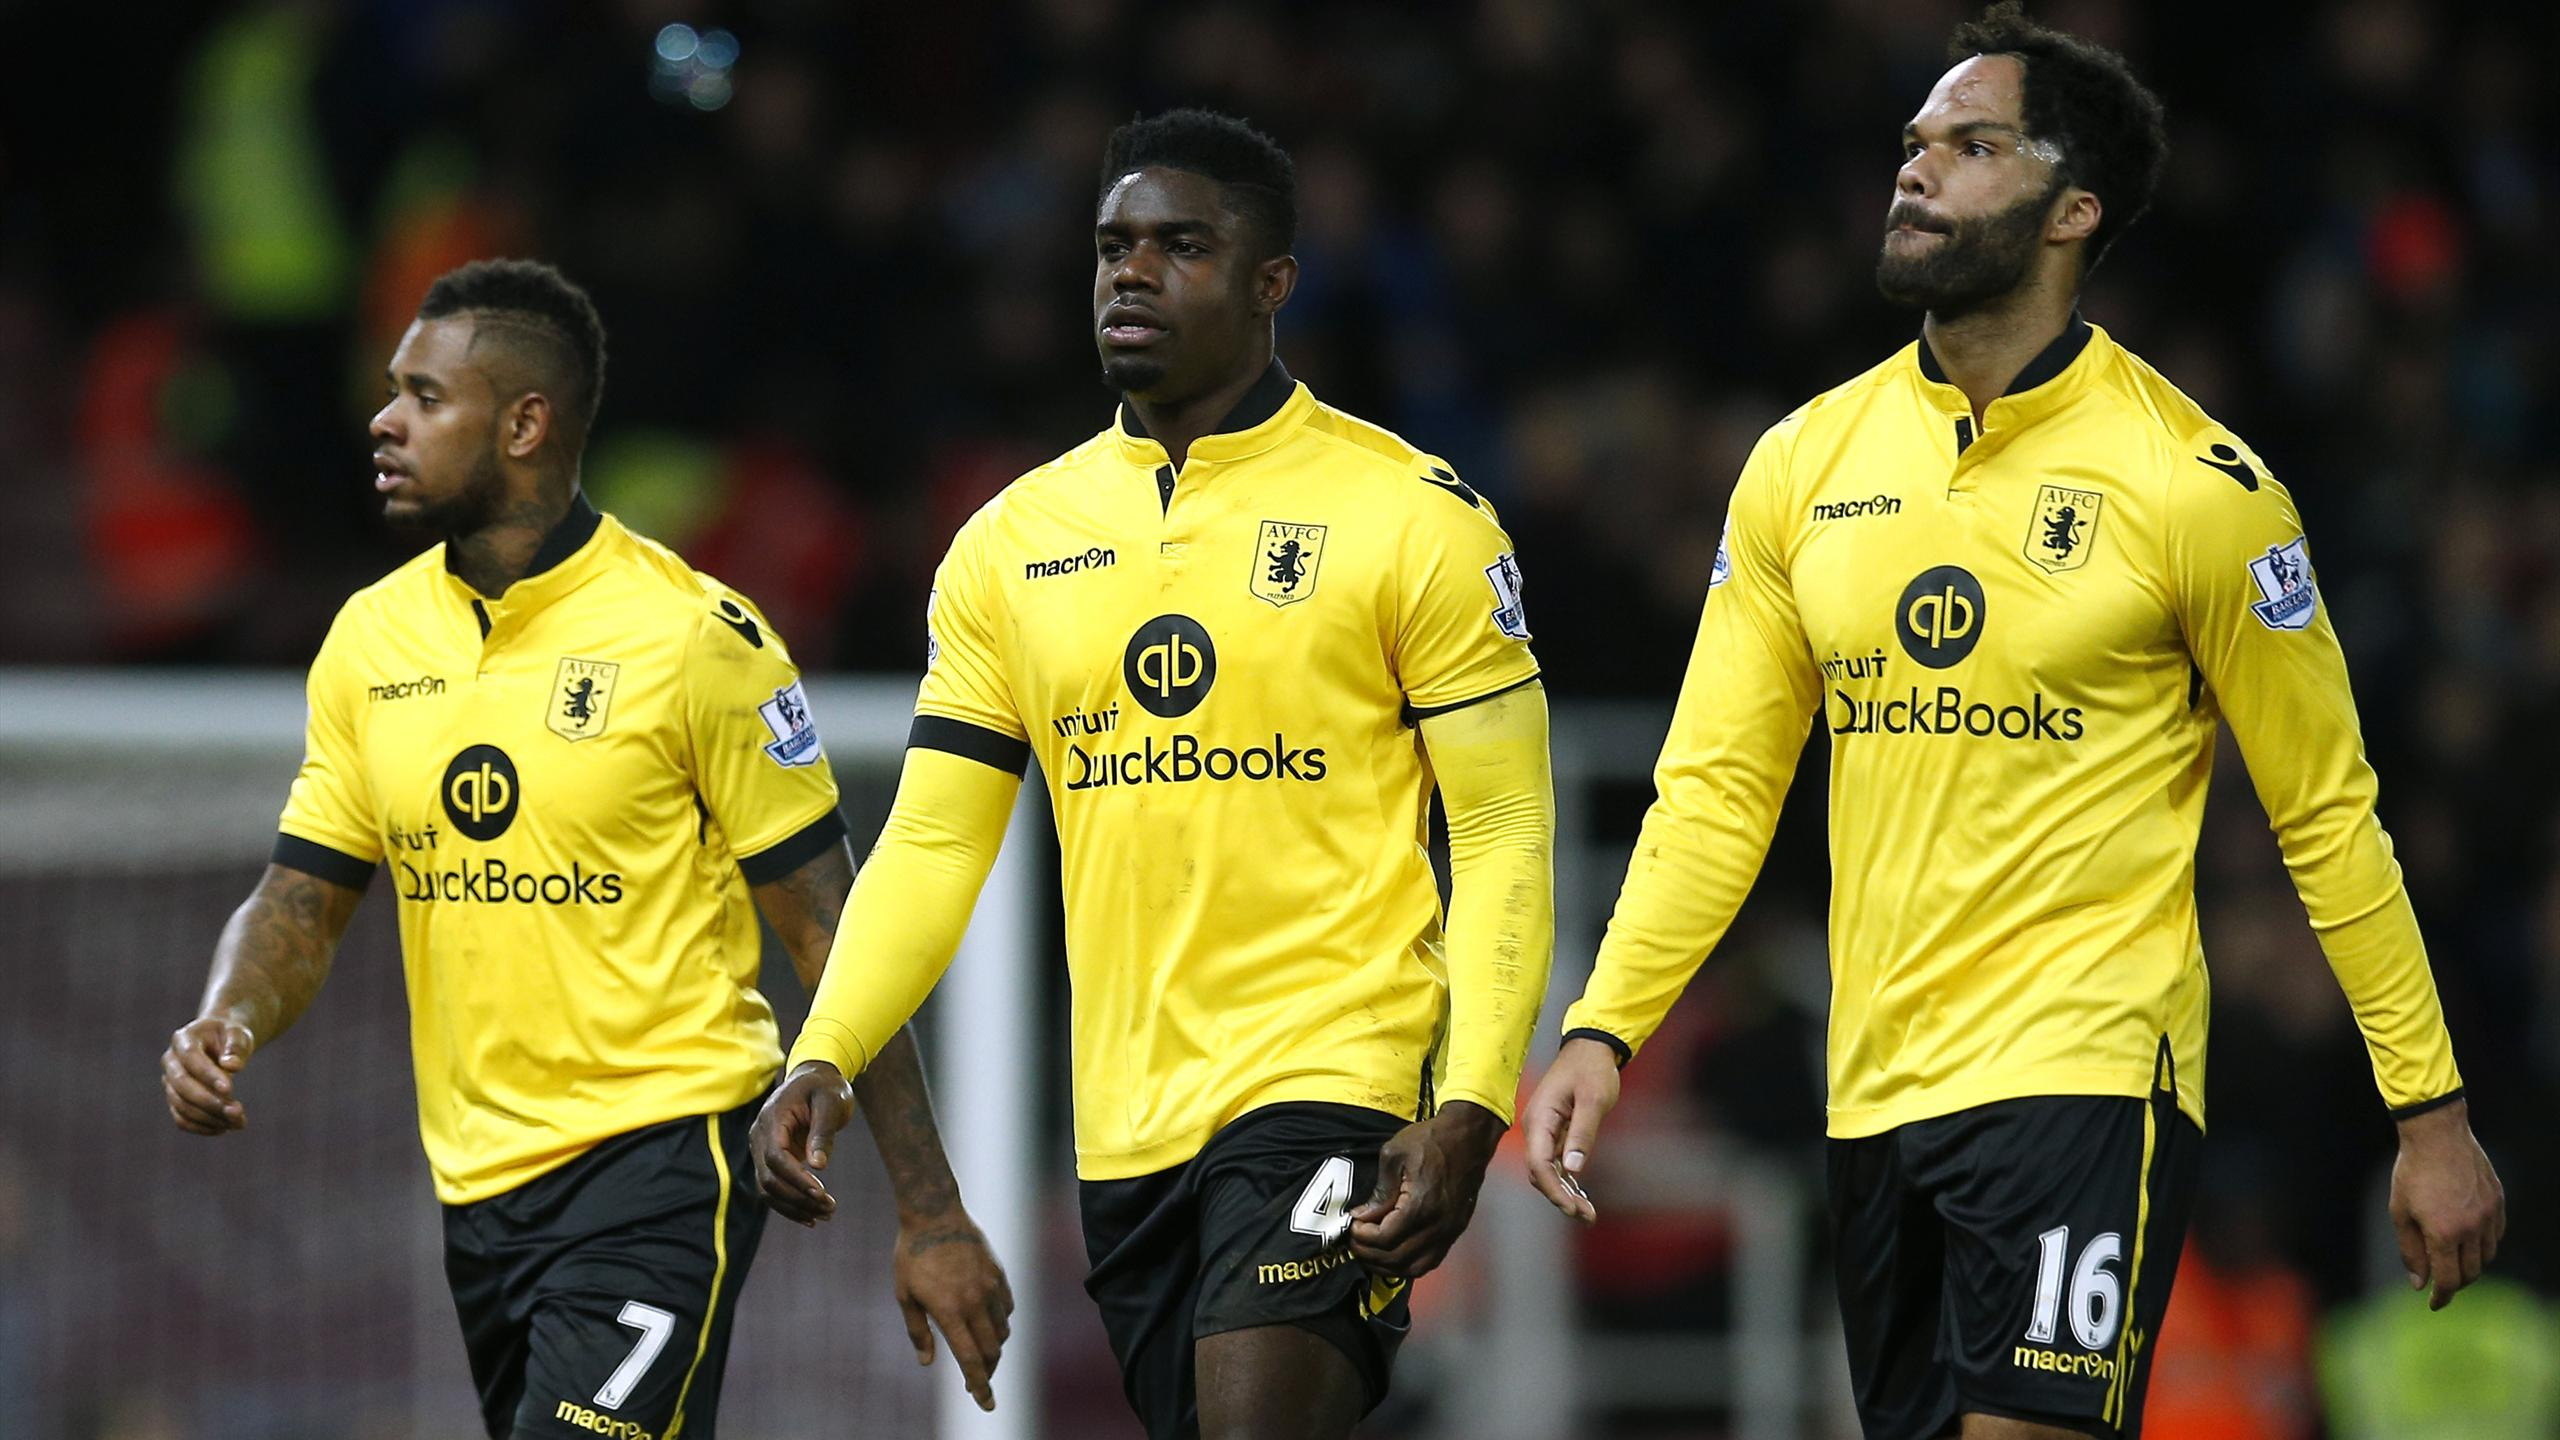 Aston Villa's Joleon Lescott (R), Micah Richards (C) and Leandro Bacuna look dejected at the end of the match